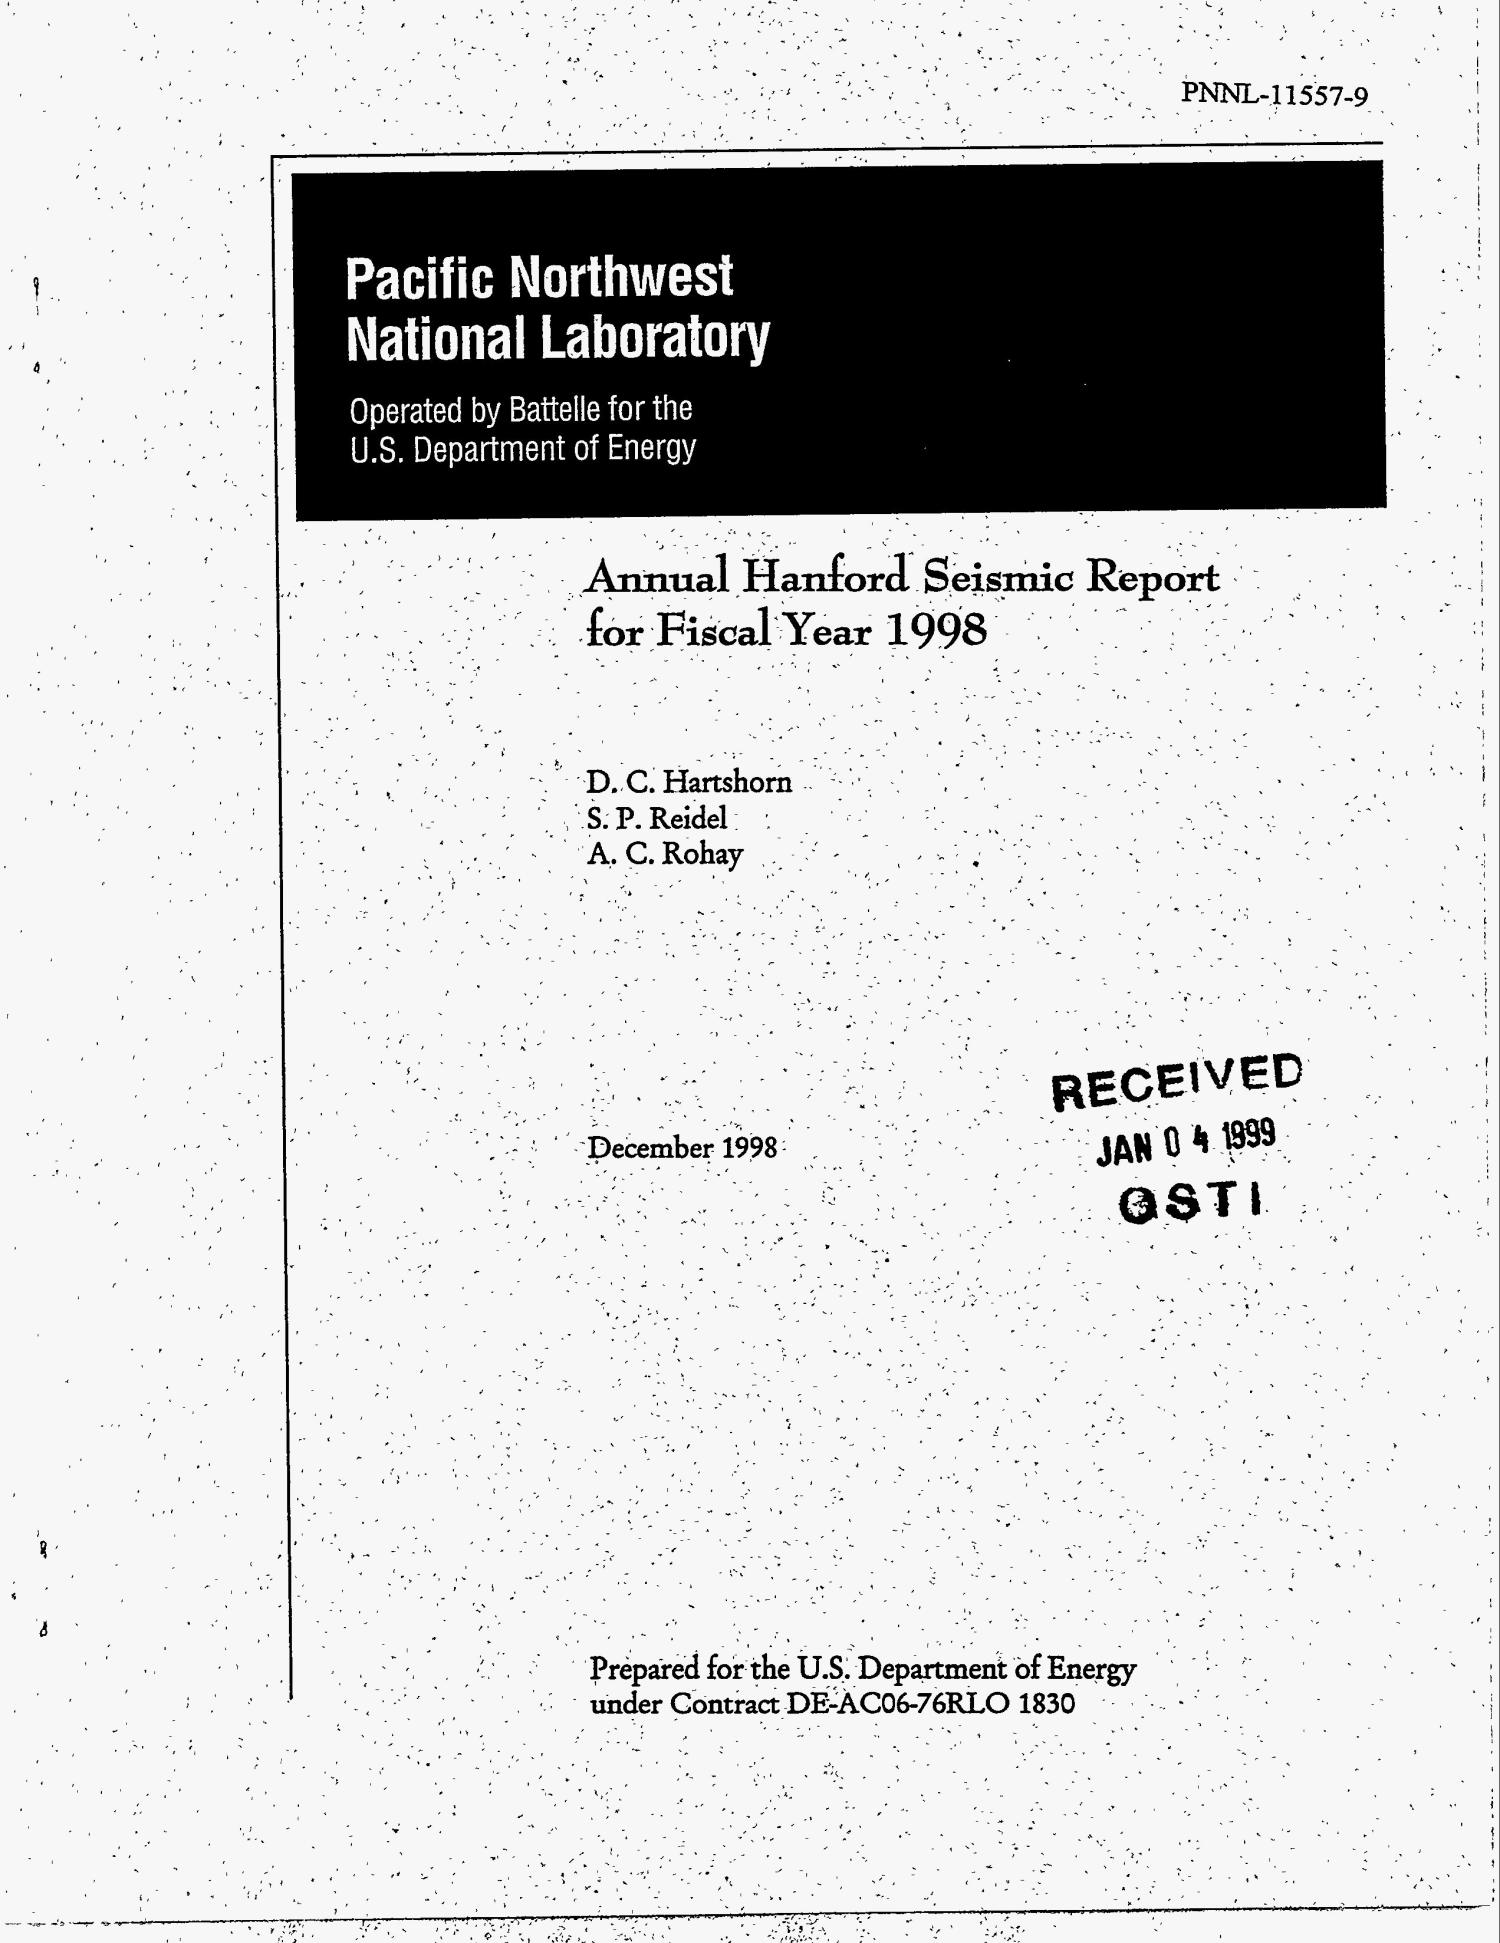 Annual Hanford Seismic Report for Fiscal Year 1998 - Digital Library